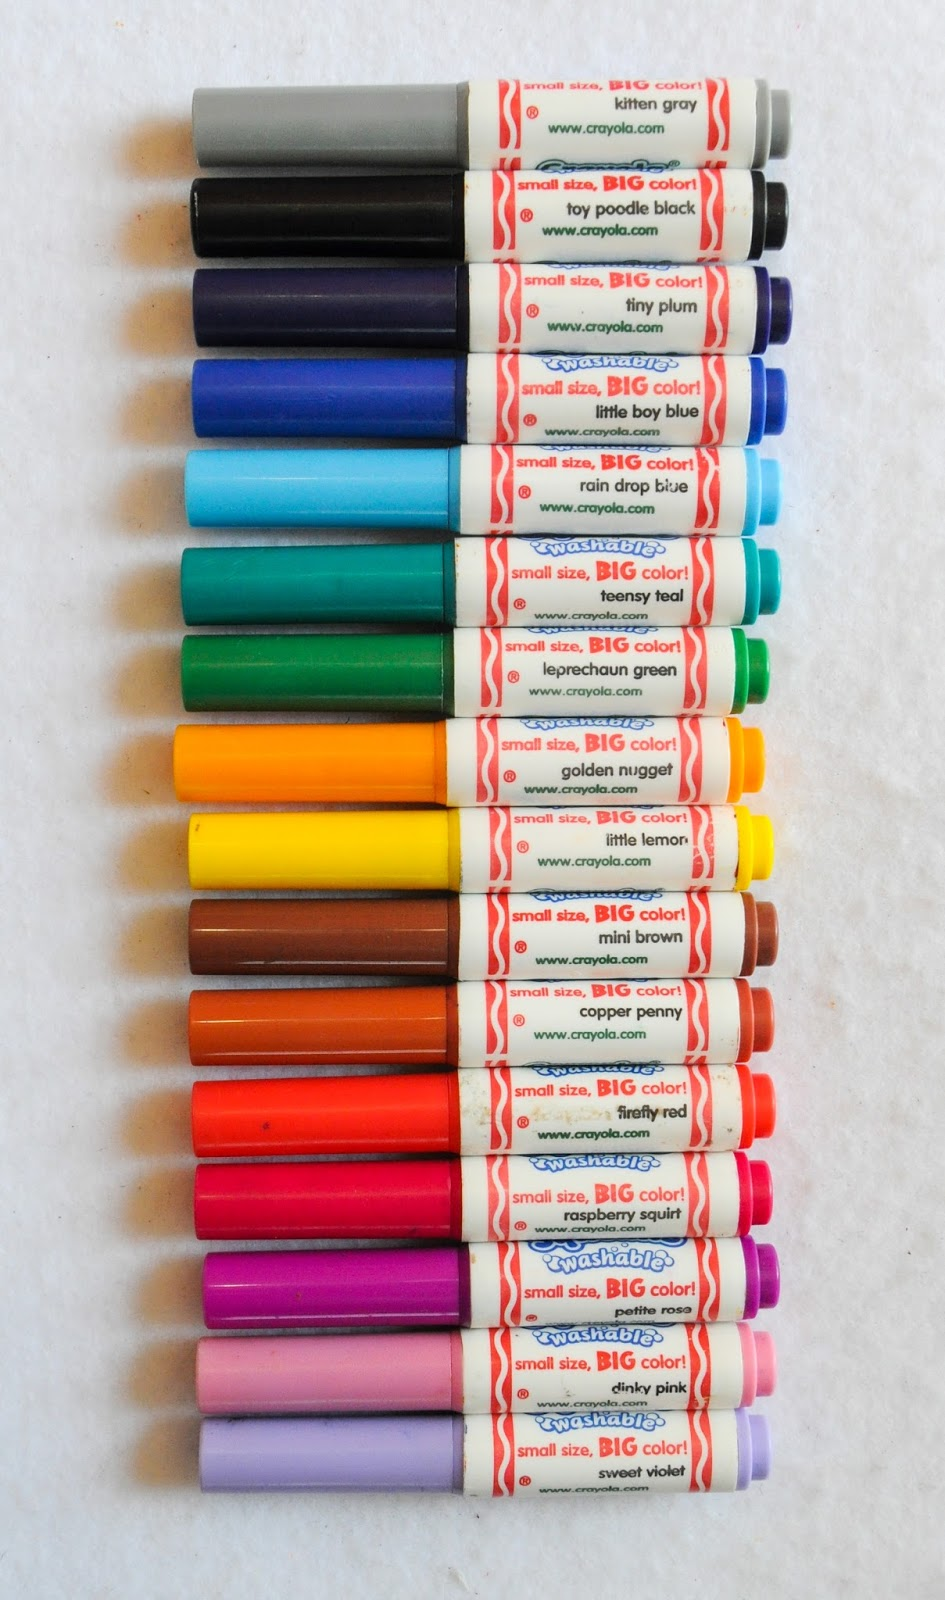 16 Count Crayola Pip-Squeaks Markers: What's Inside the